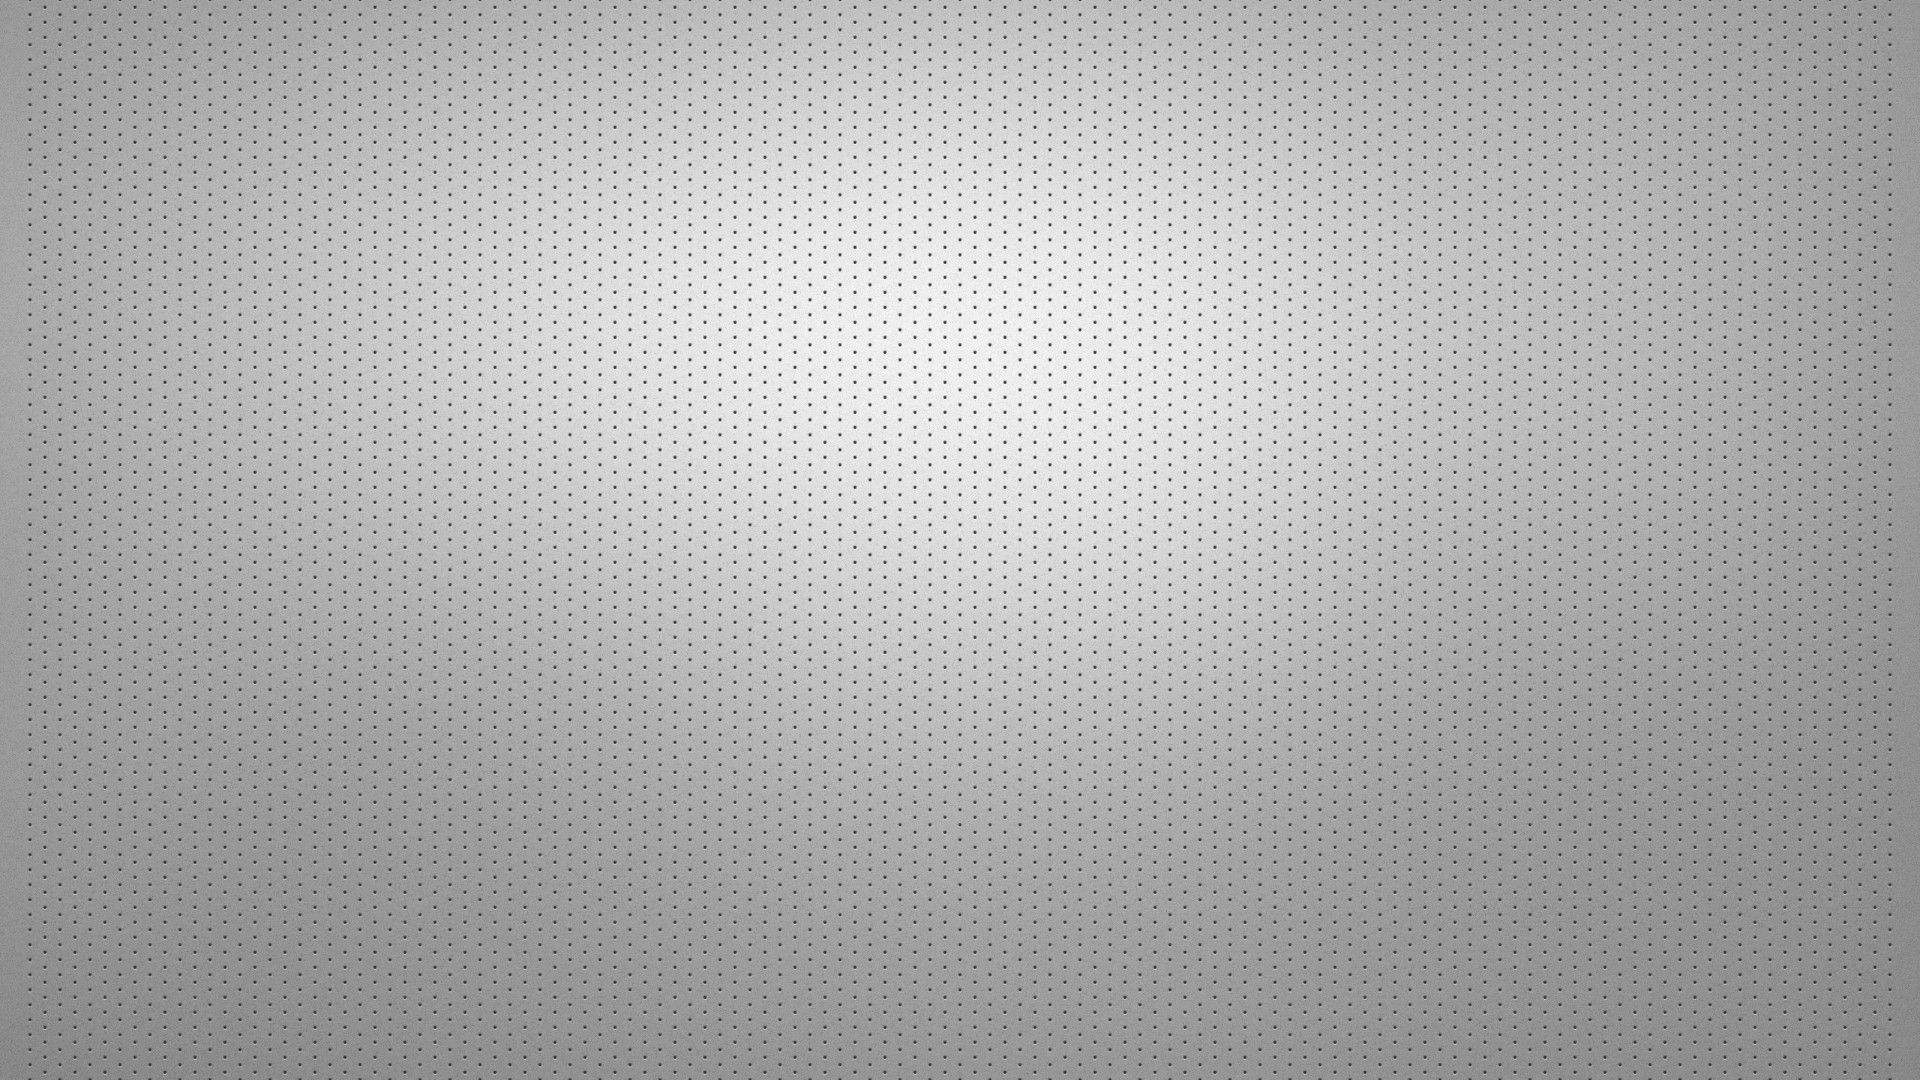 Hd Silver Backgrounds Pure White Background White Background Hd